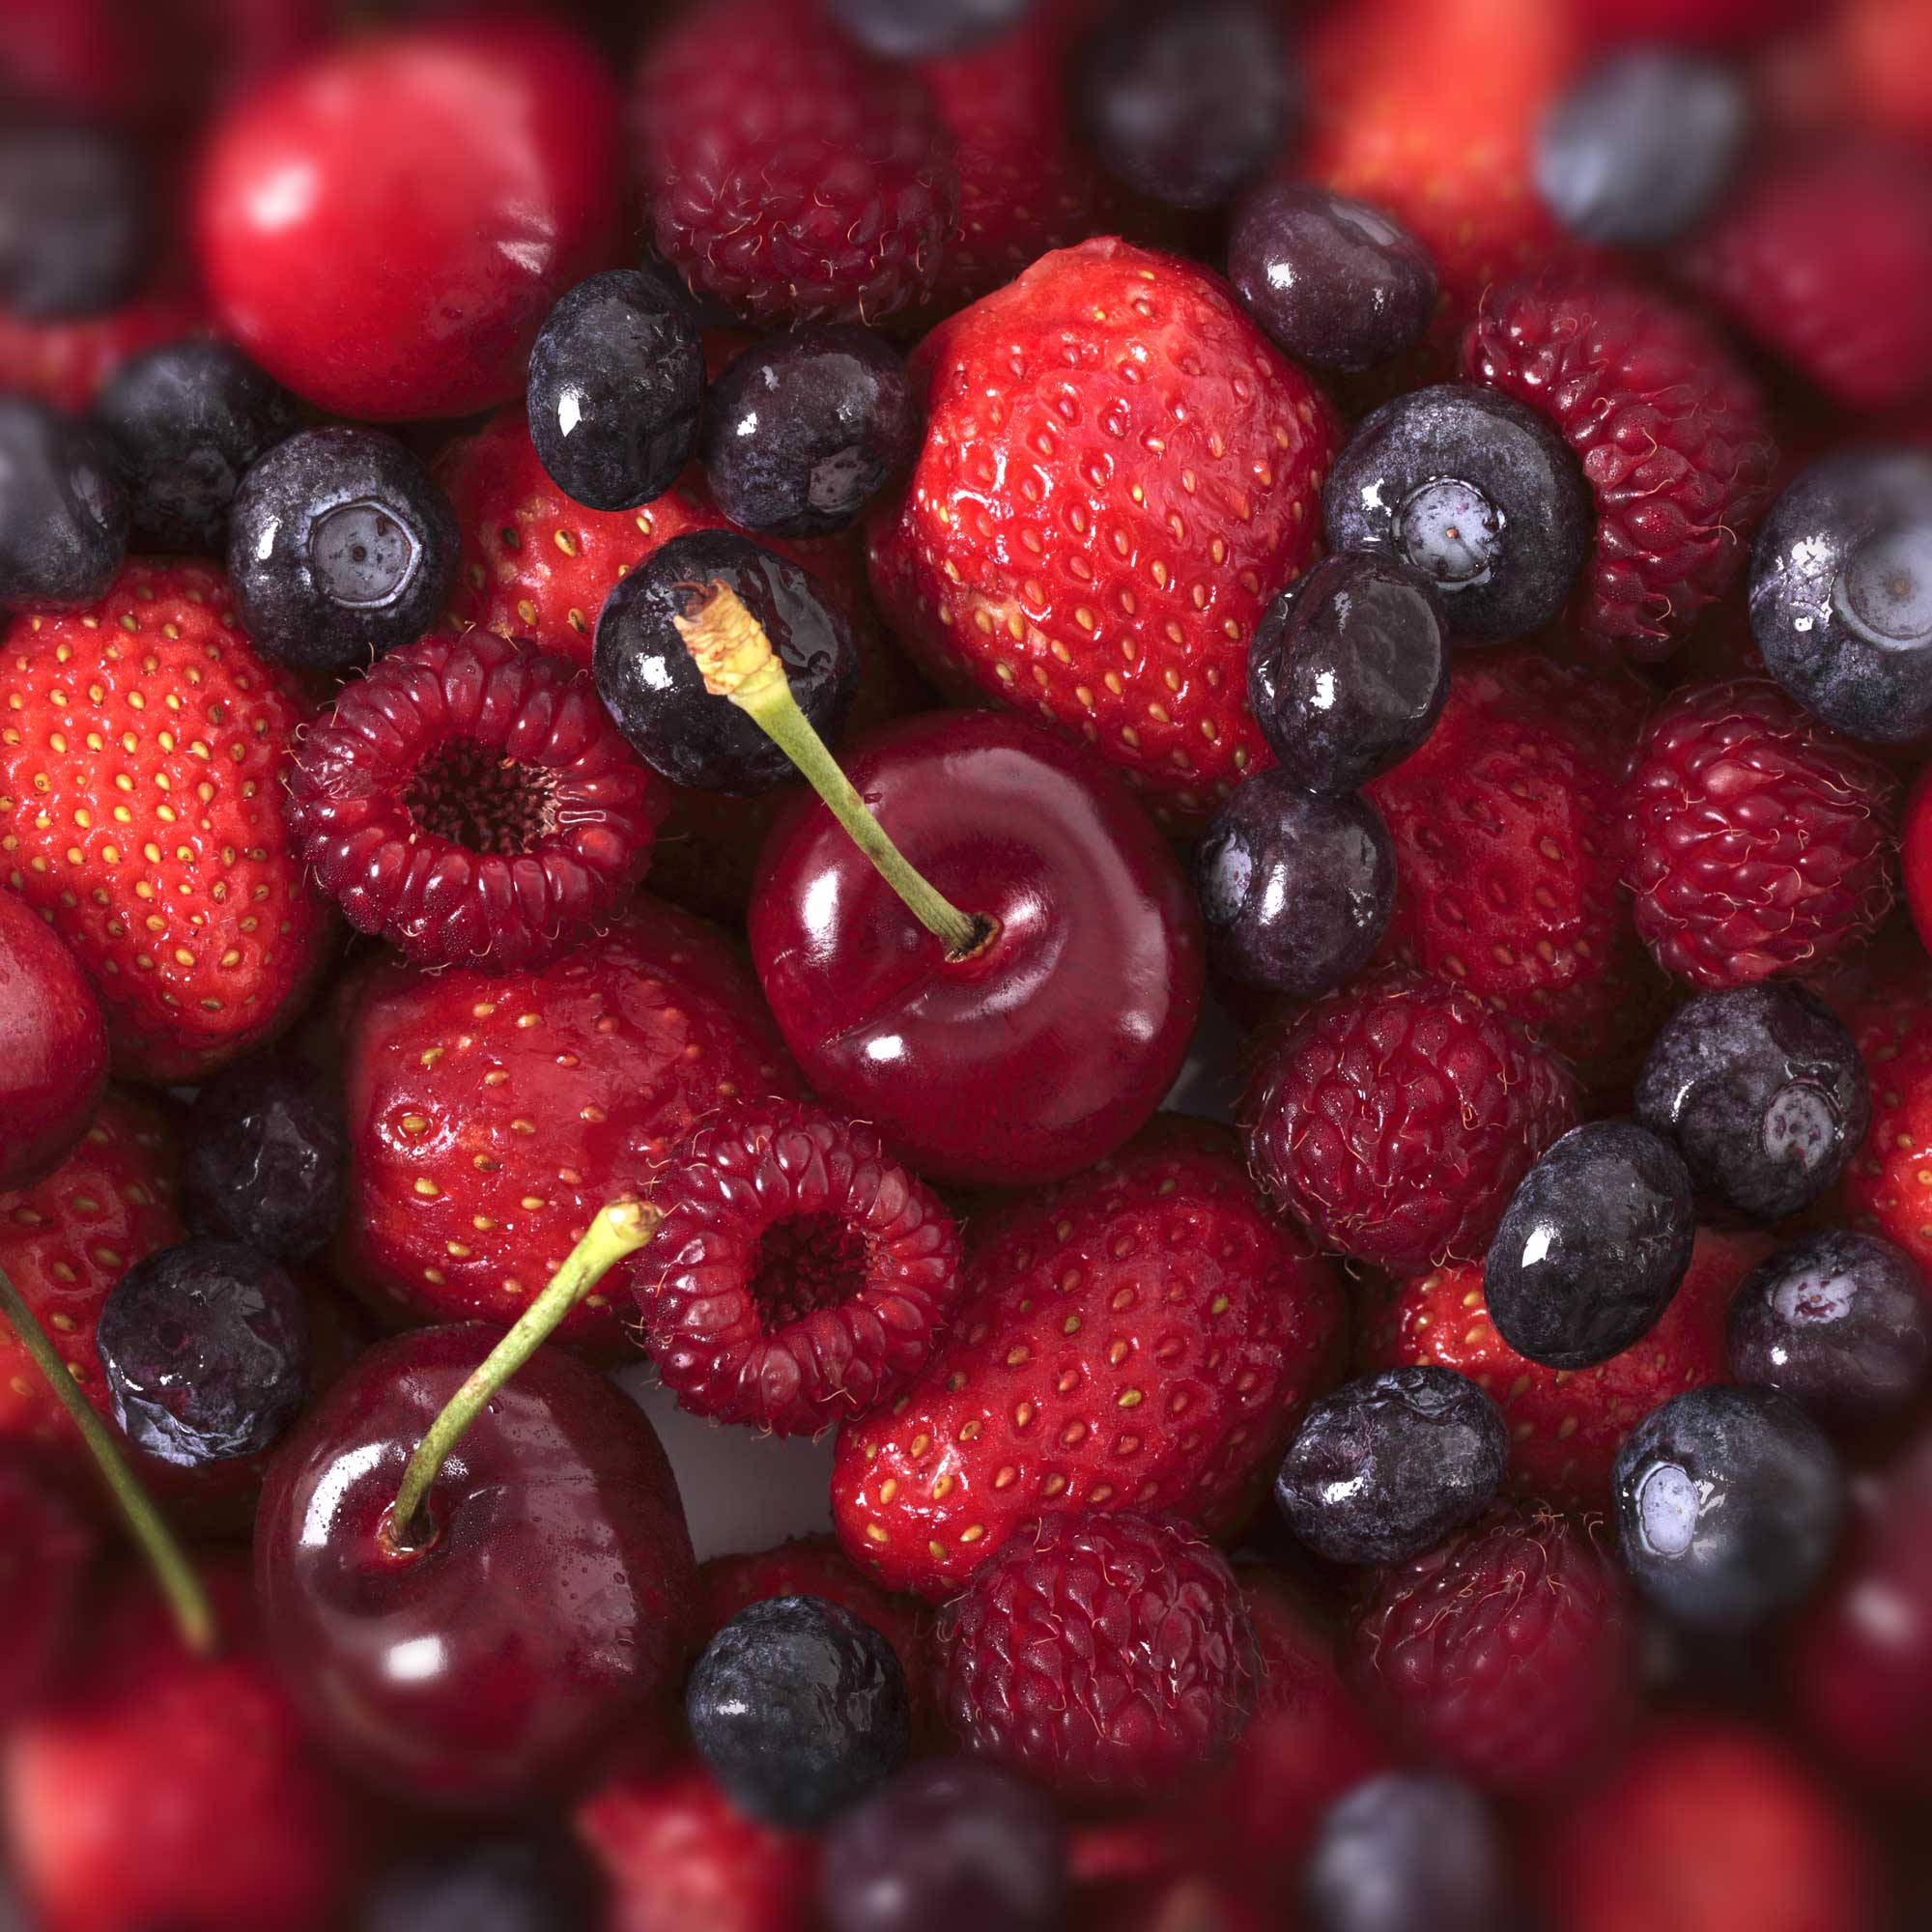 frozen FRUITS & berries -